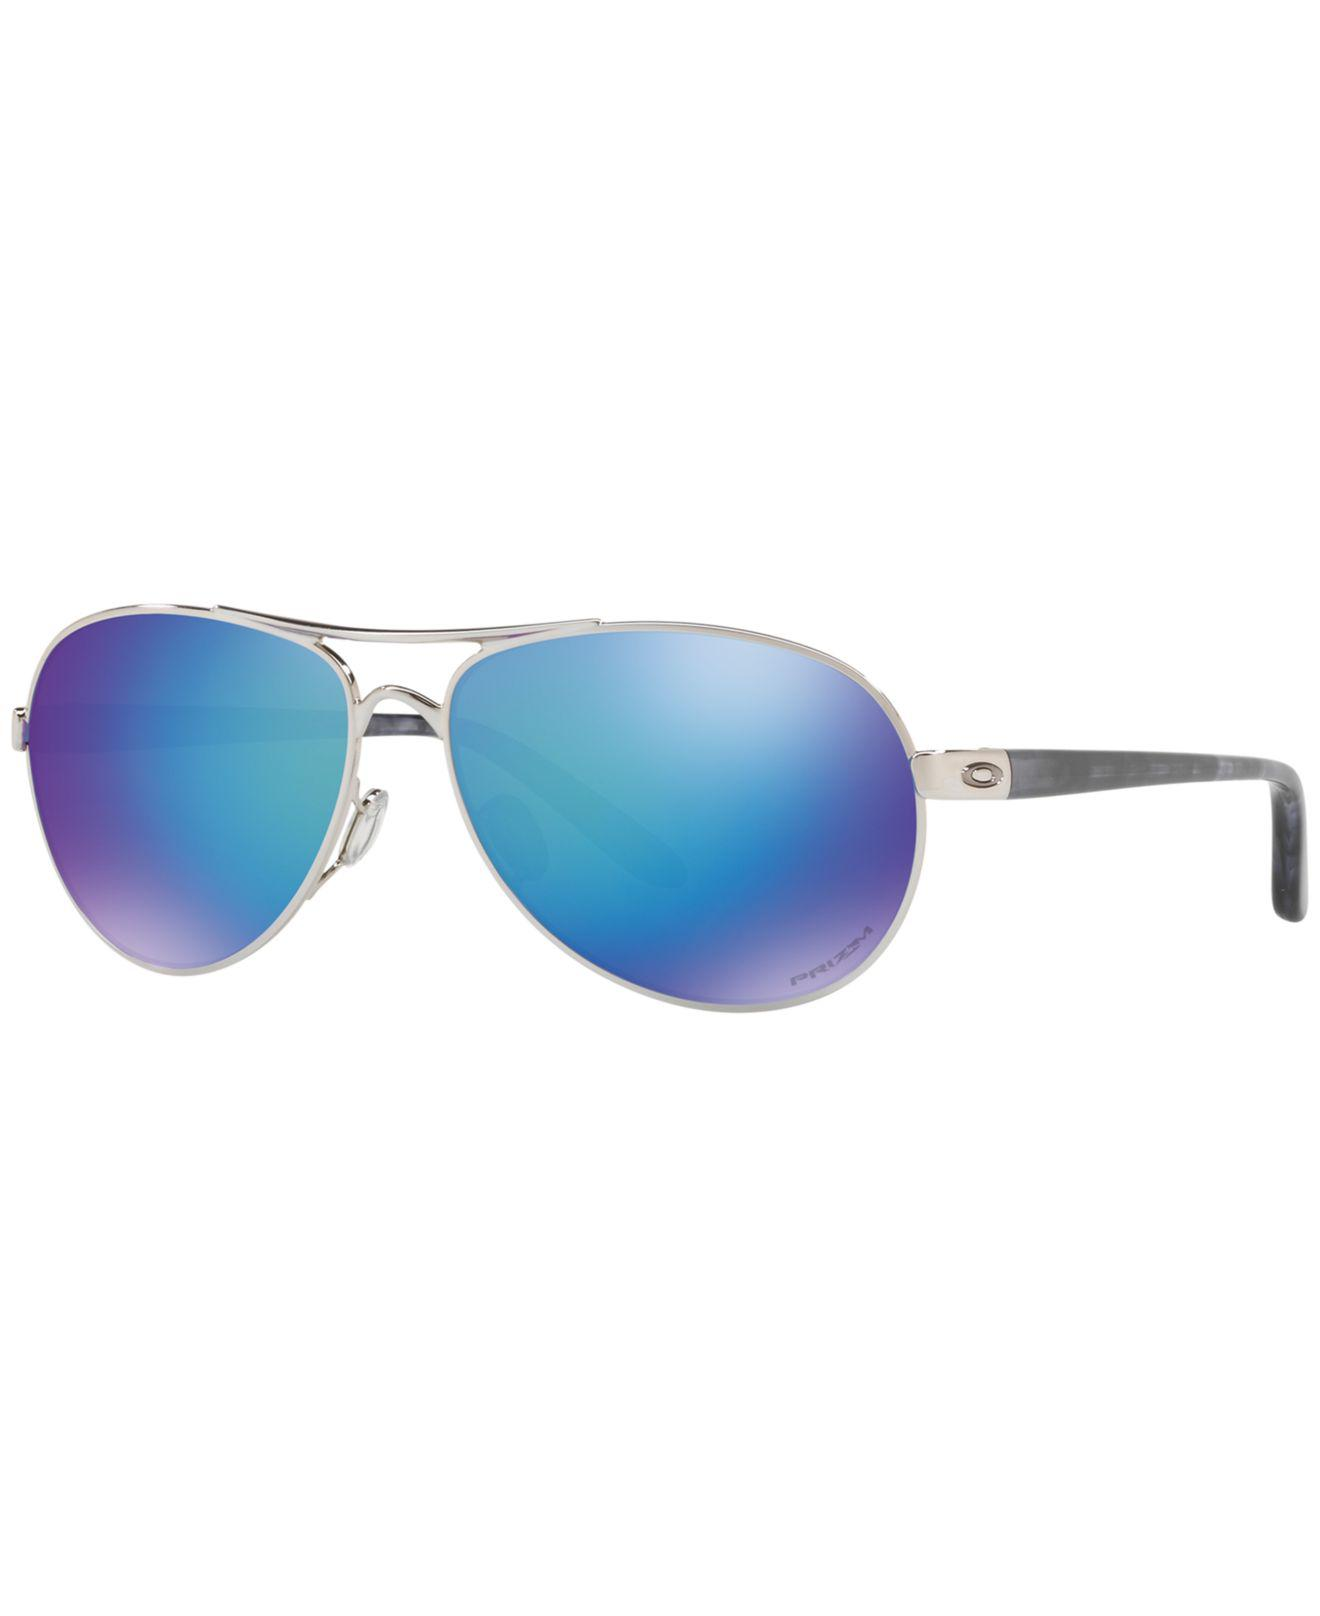 c32fb658ce Oakley Sunglasses